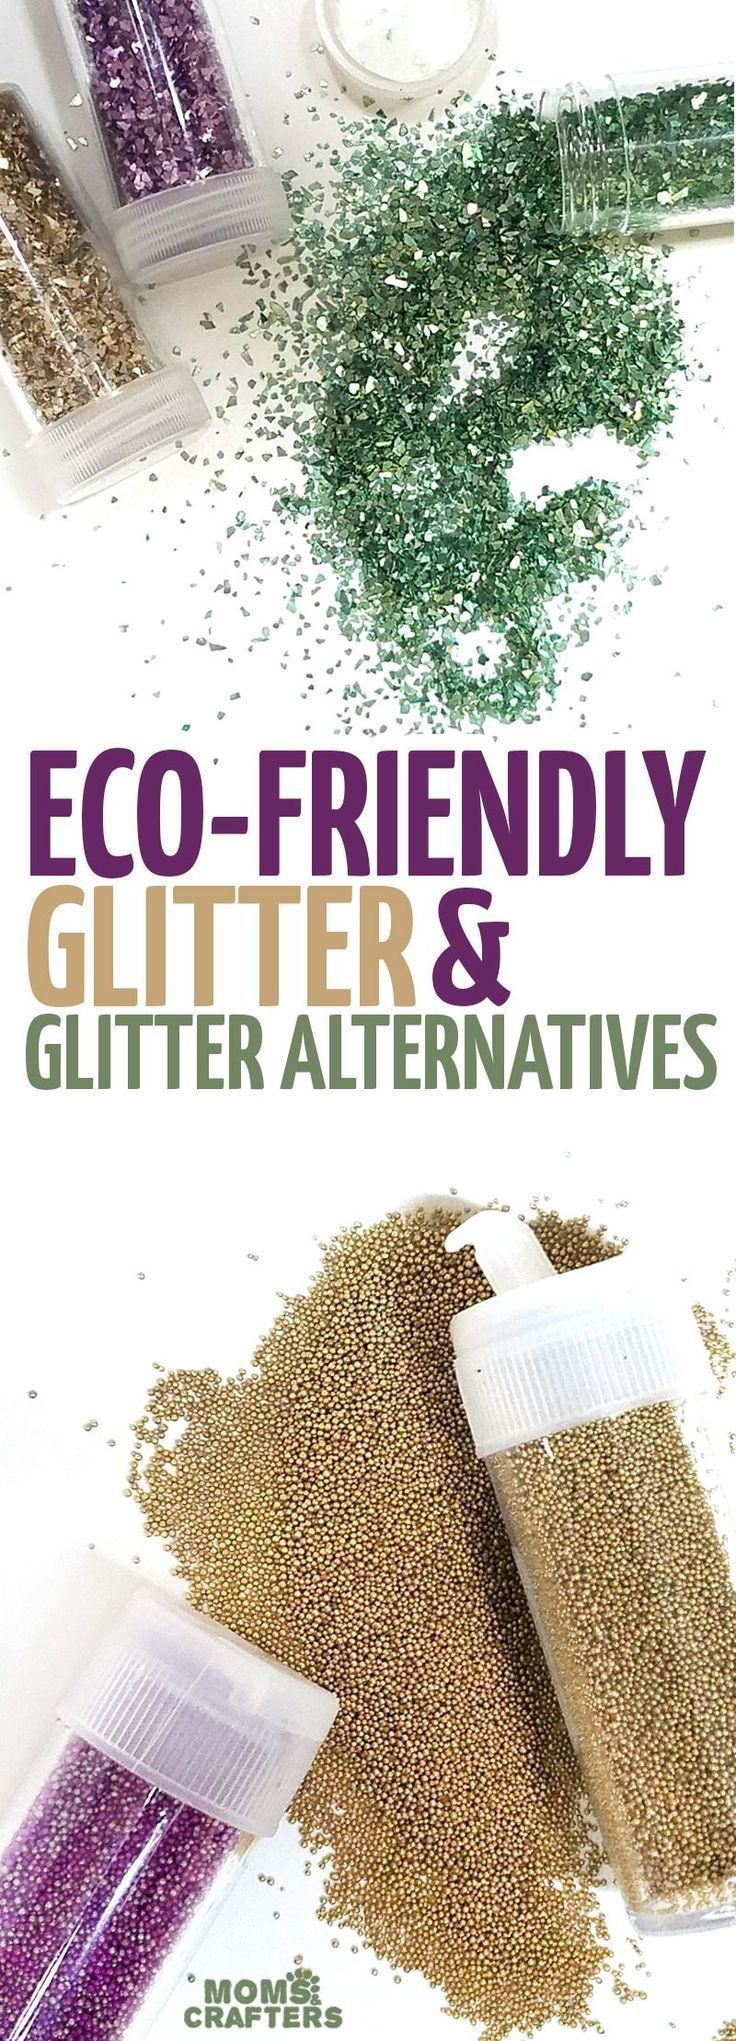 If you love crafting with glitter but want an eco friendly glitter option, these biodegradable glitter ideas inclde some glitters and glitter alternatives. #glitter #teencrafts #ecofriendly #GlitterCrafts